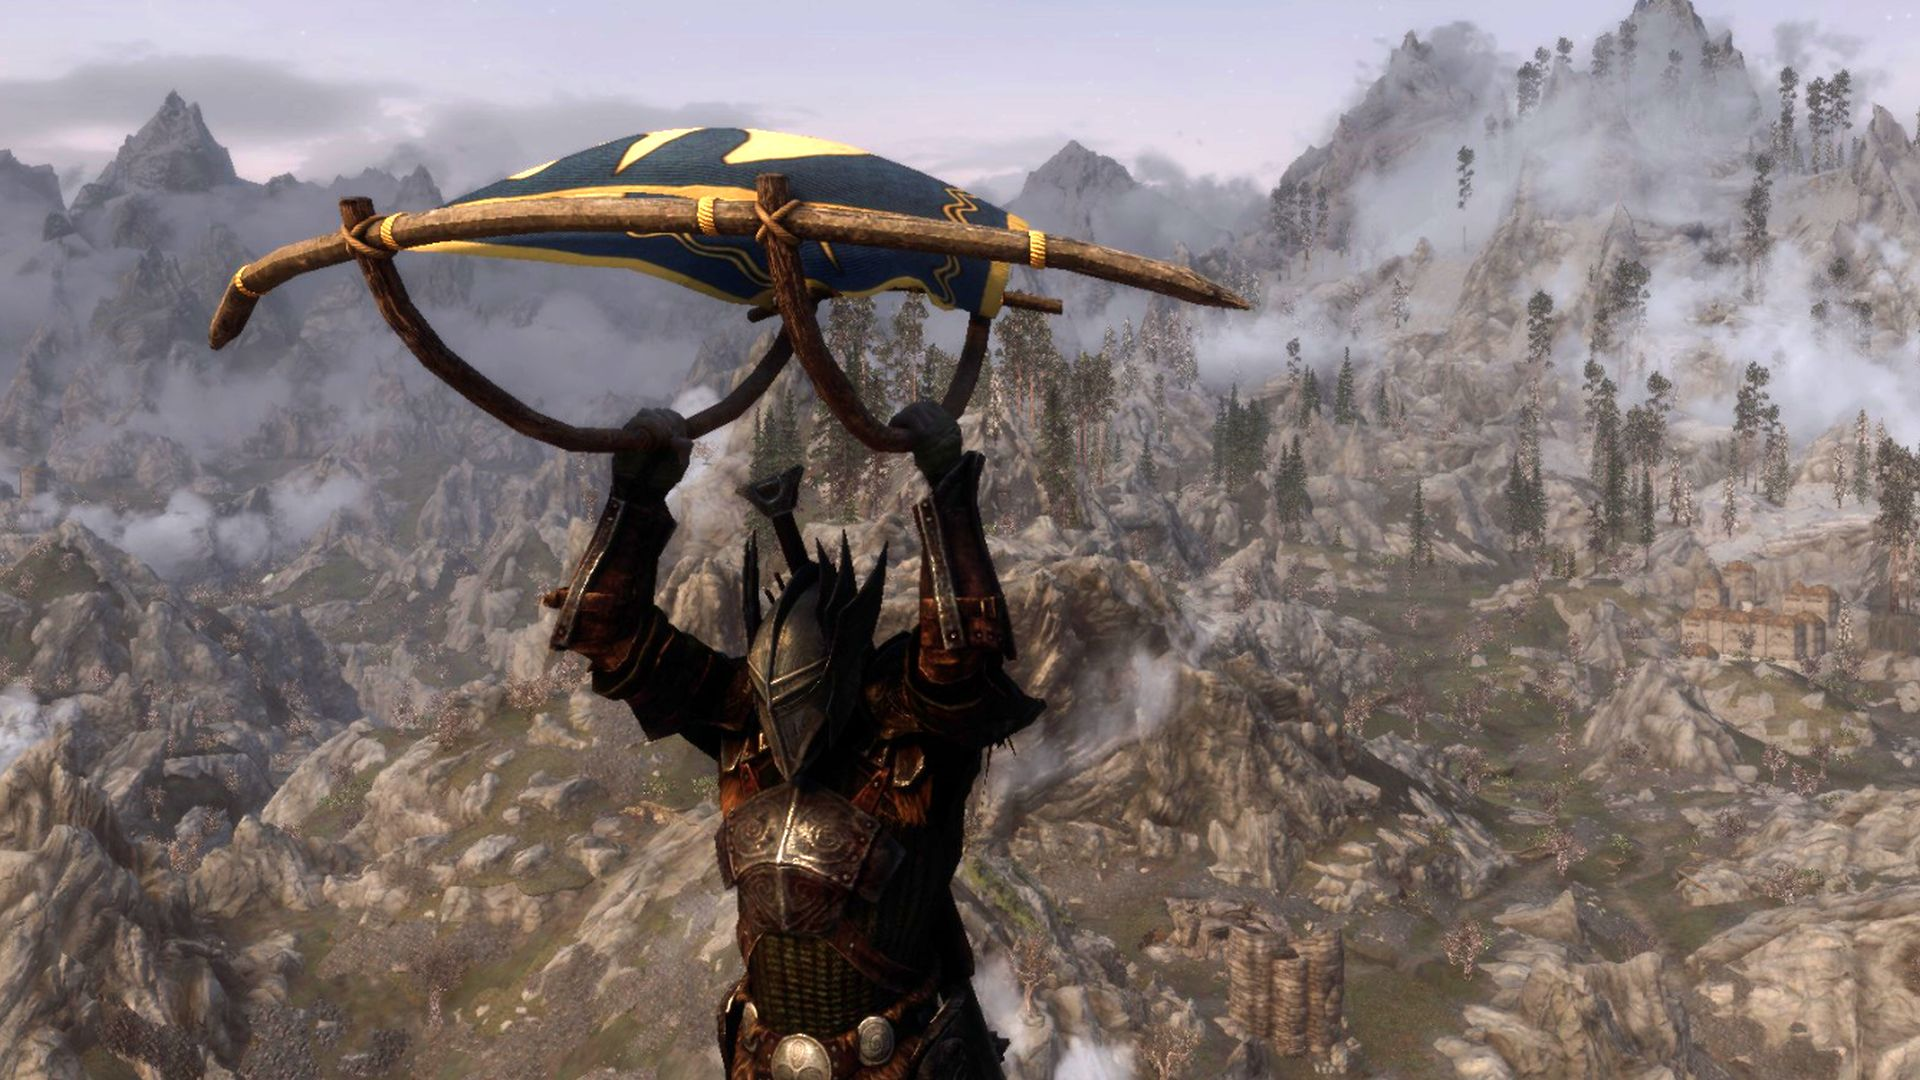 Skyrim modders have made a working, Breath of the Wild-style paraglider